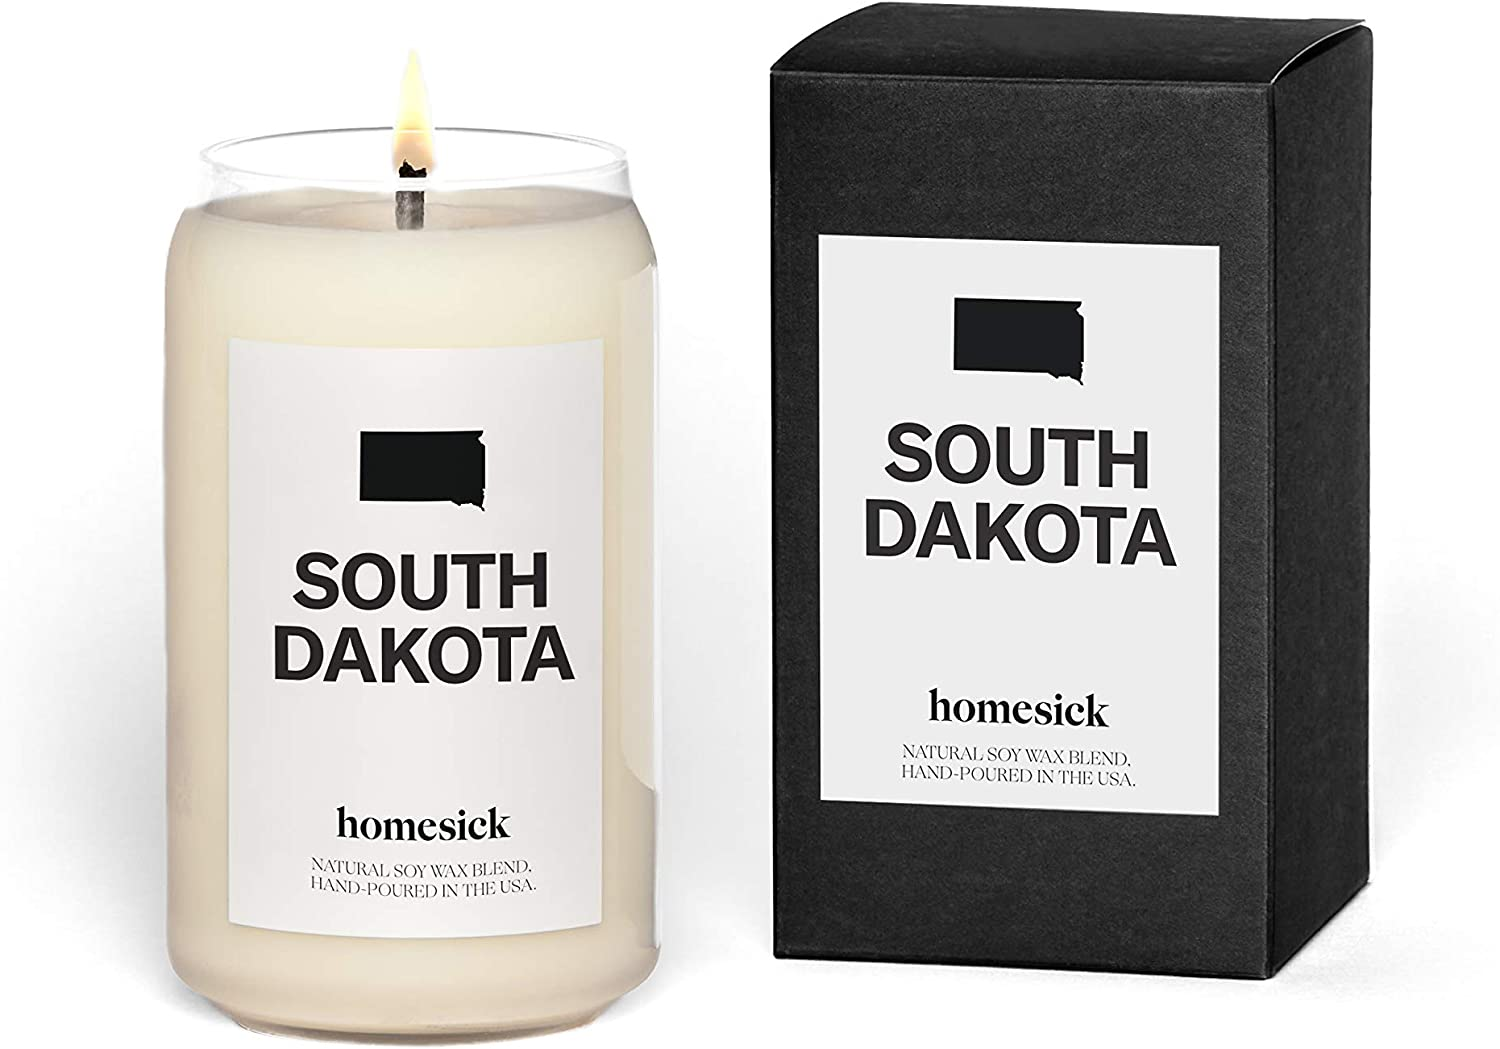 Homesick Candle Scented, South Dakota